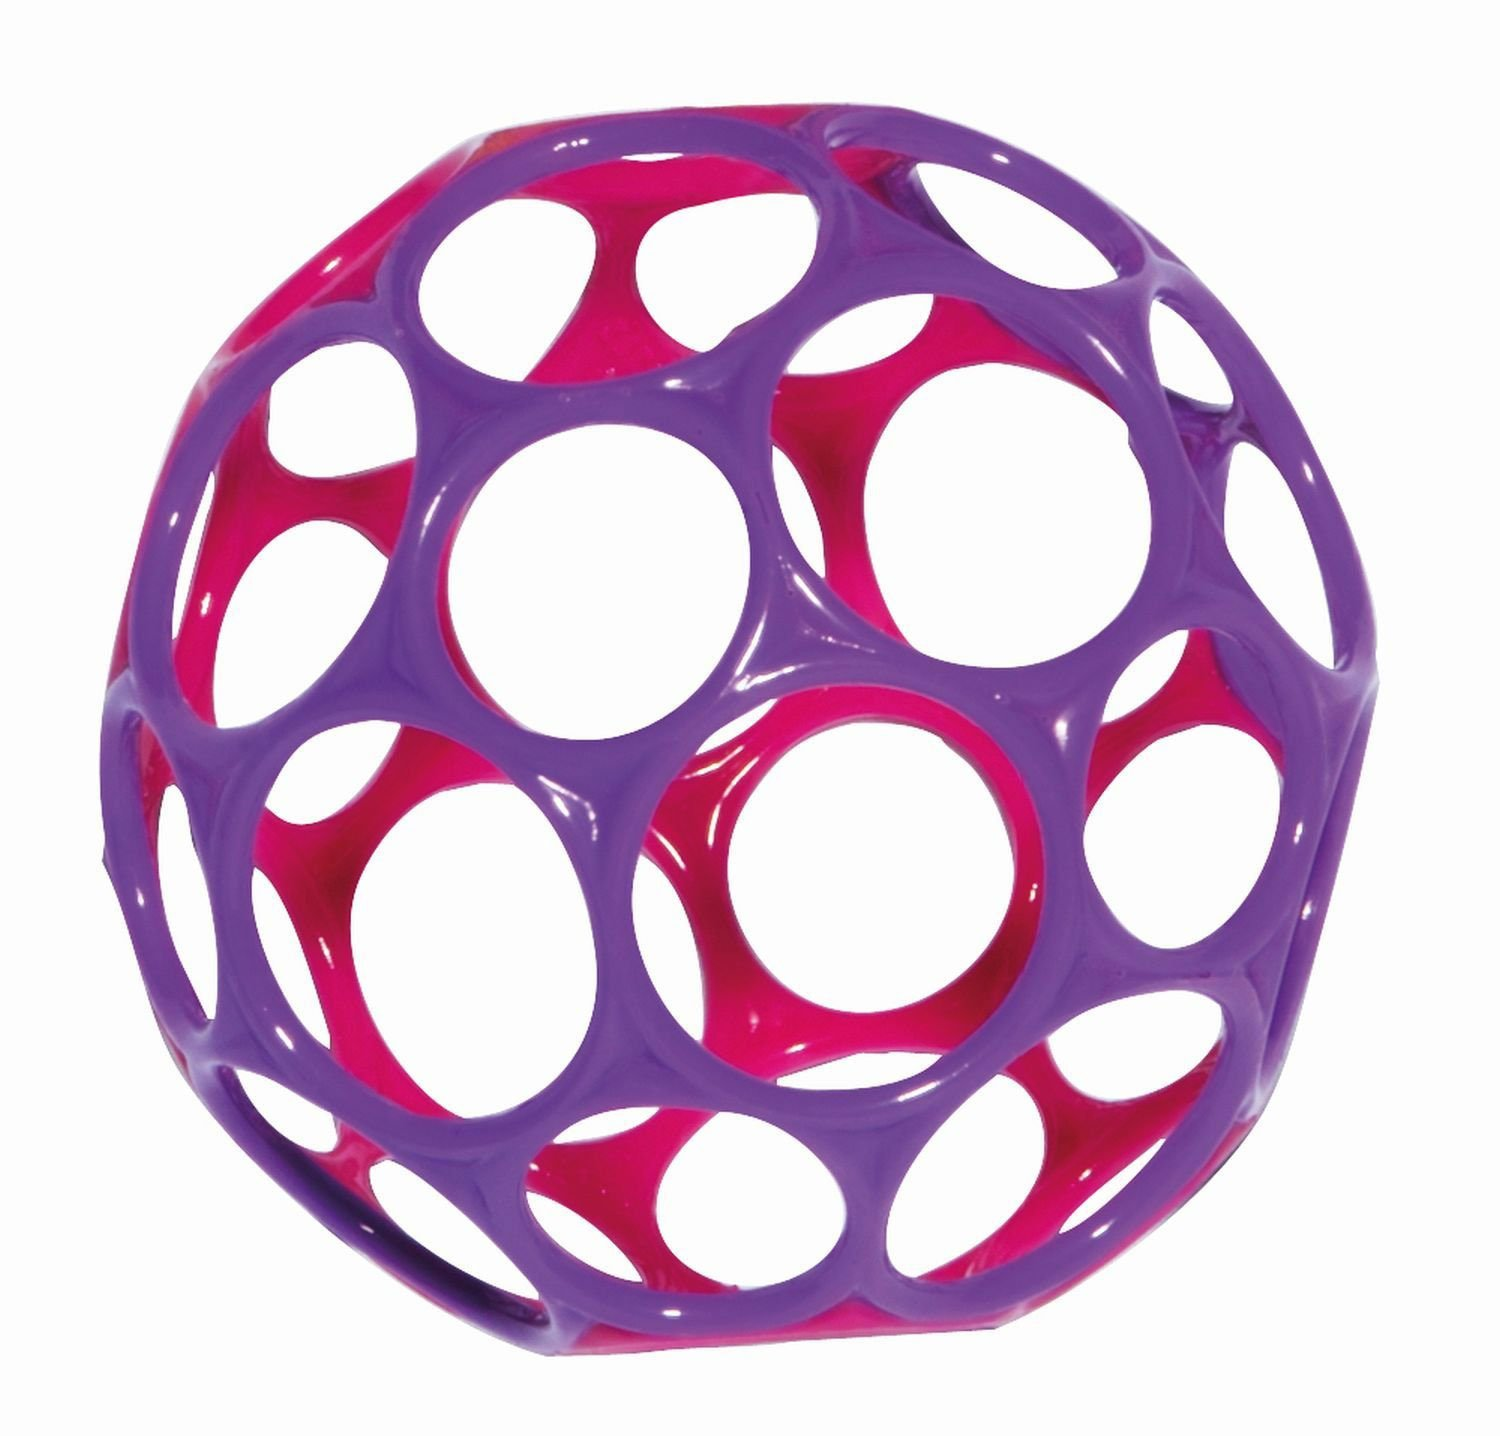 Oball Toy Ball, Multicolored, Assorted by Oball (Image #7)